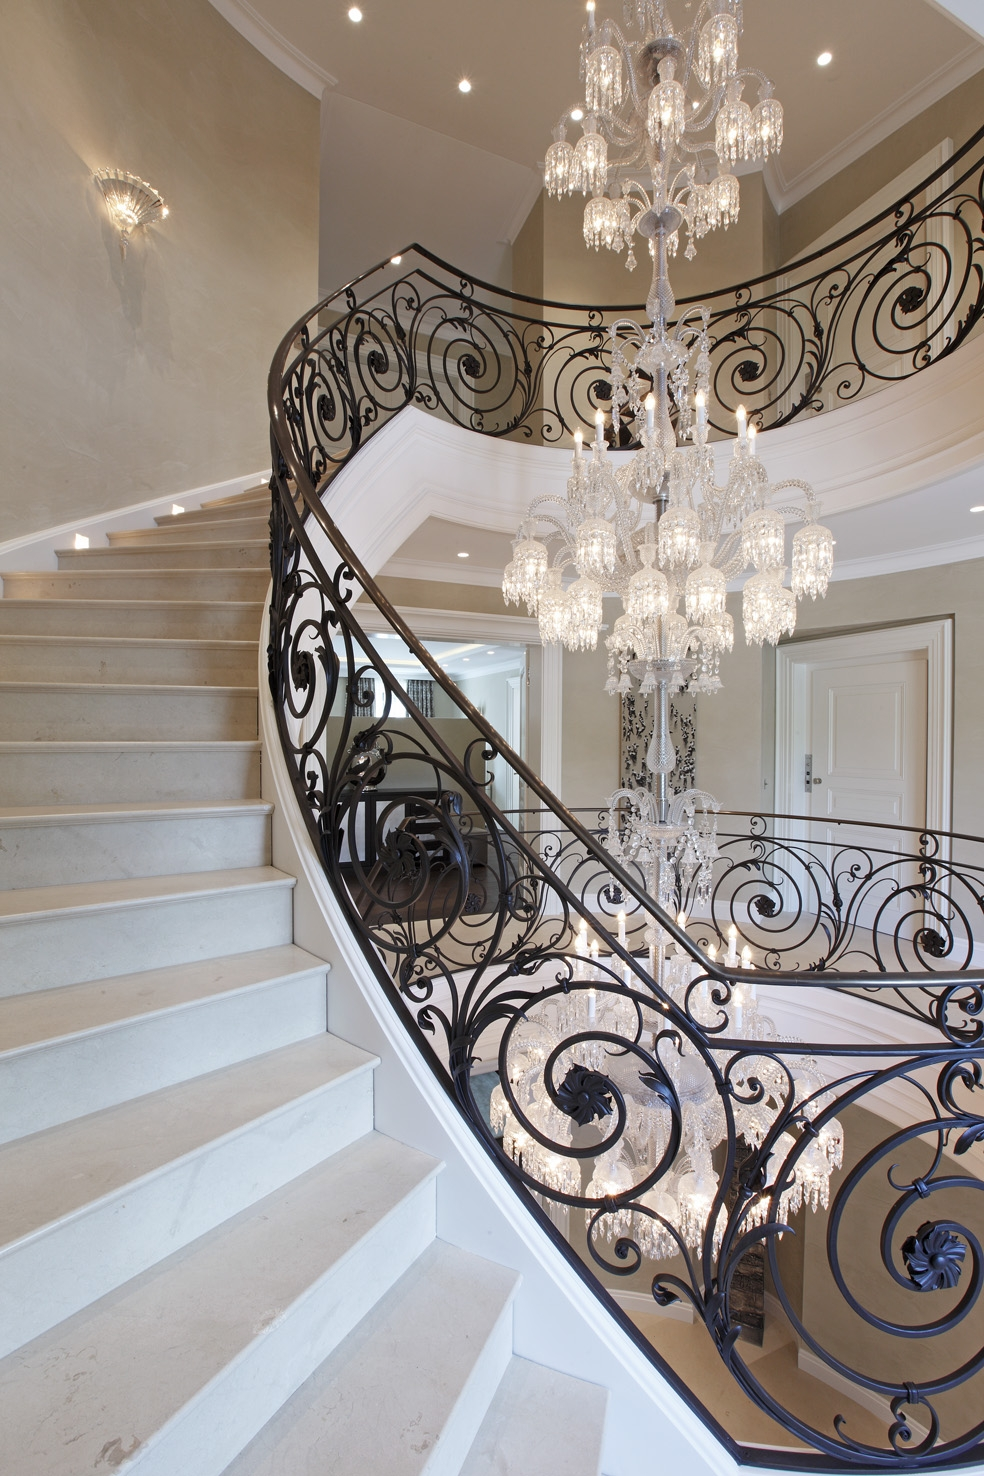 Baccarat Chandelier Villa Privestunning Wrought Iron Stair Inside Stairway Chandelier (Image 5 of 15)